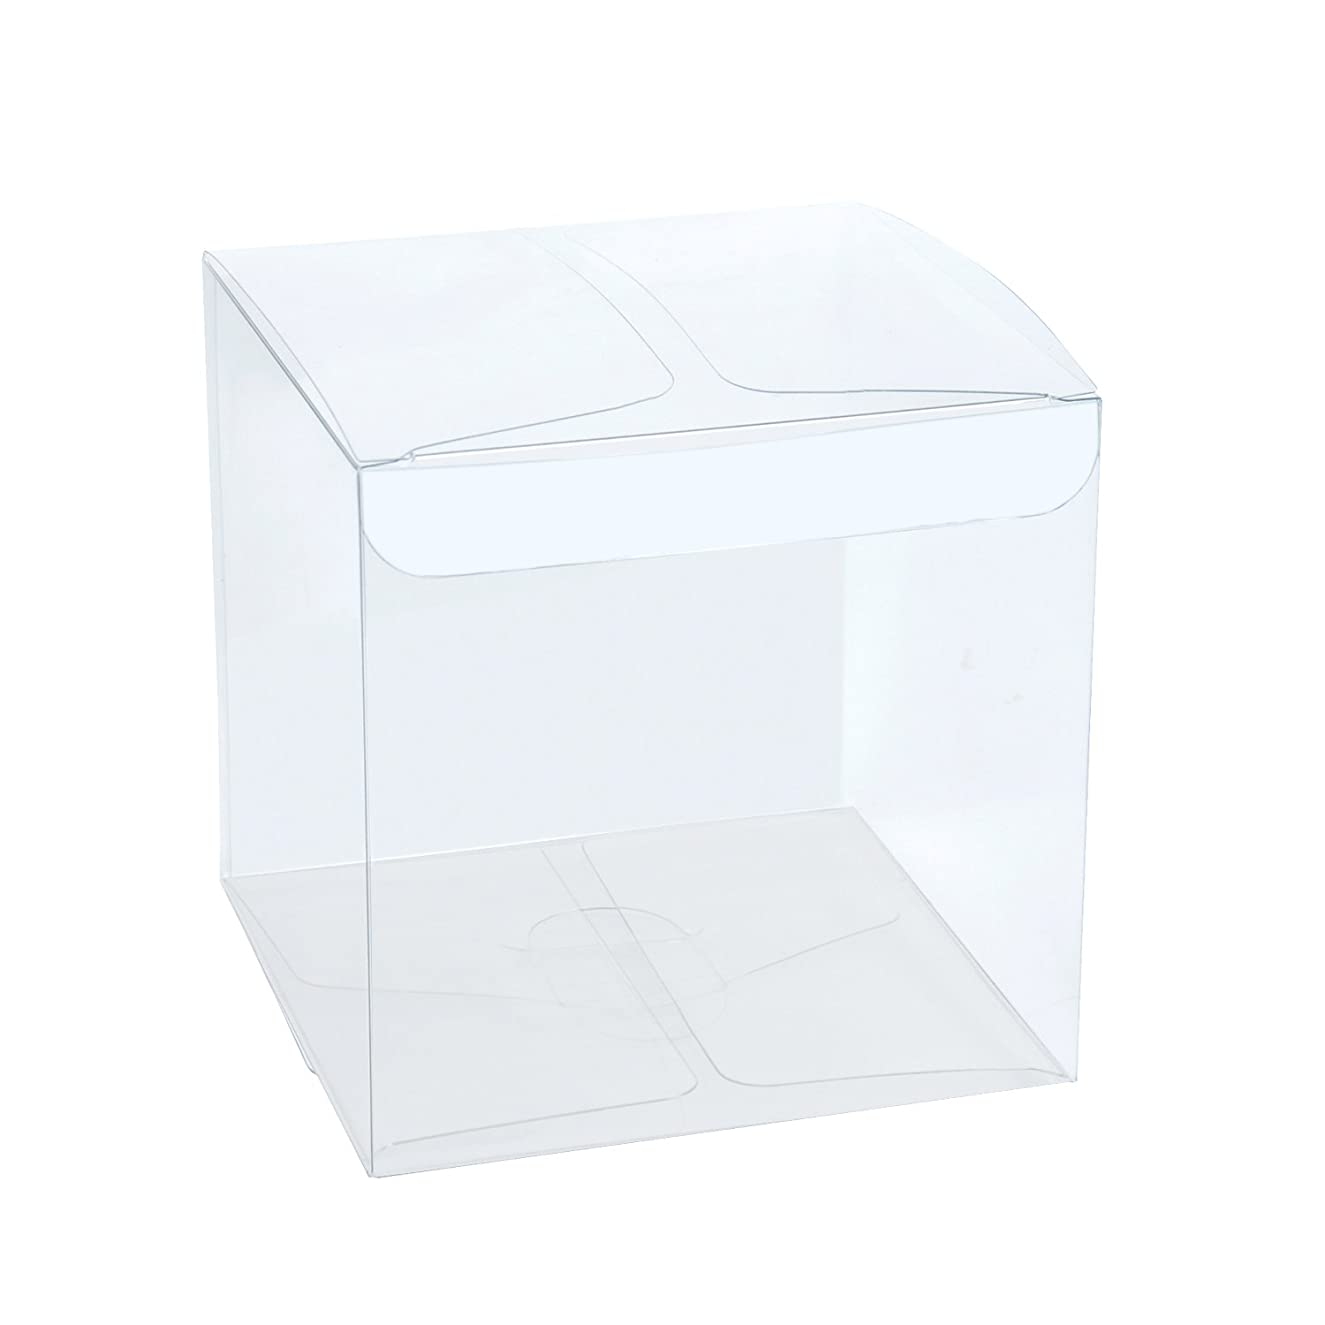 LaRibbons 30Pcs PET Clear Box, Transparent Boxes, Candy Box, Clear Gift Boxes for Wedding, Party and Baby Shower Favors, 3